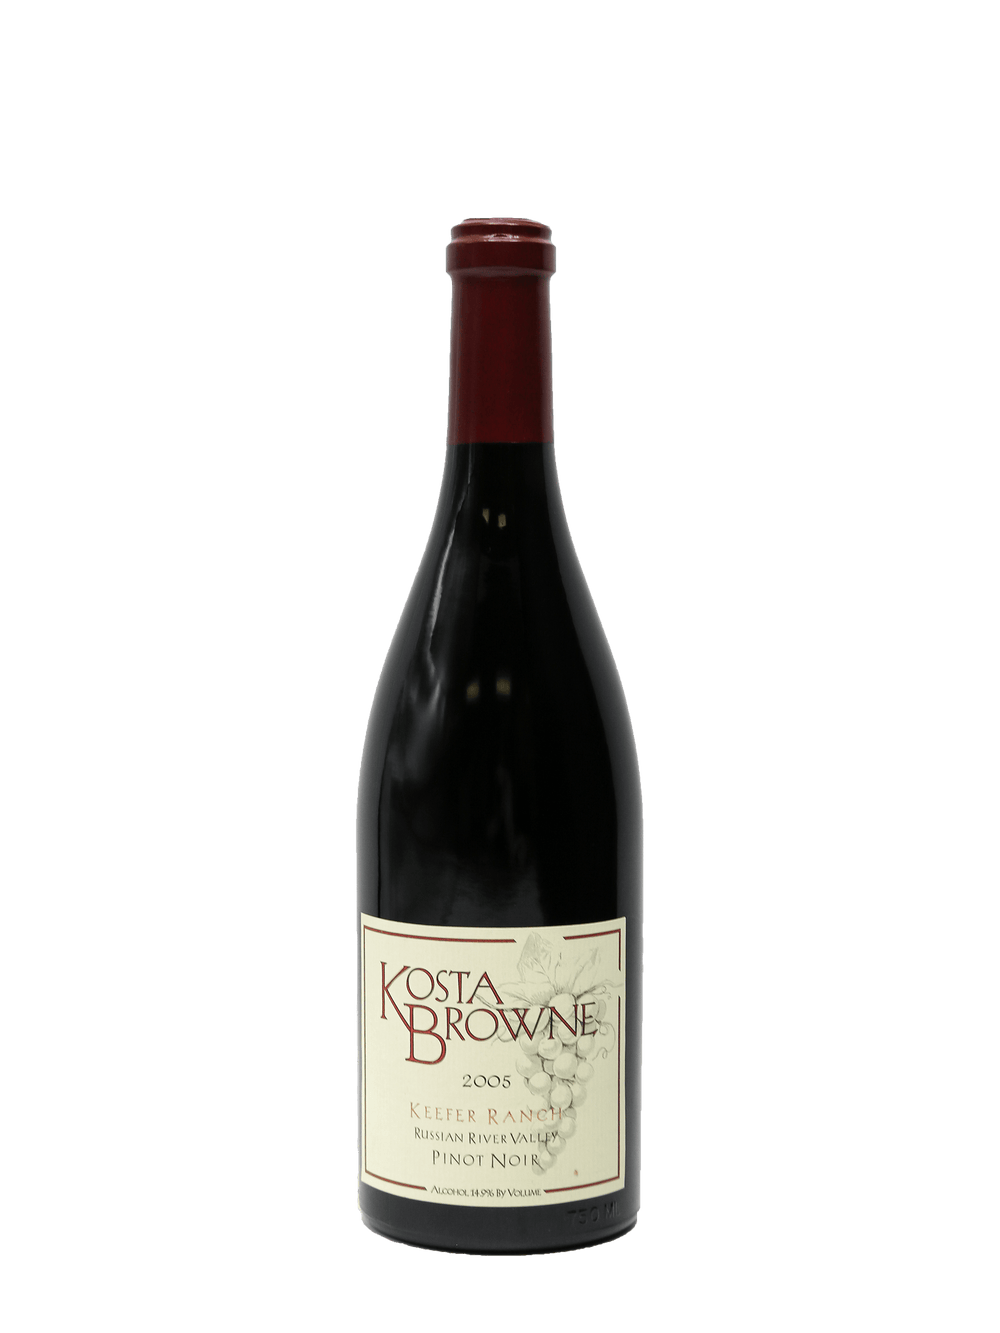 2005 Kosta Browne Pinot Noir Keefer Ranch